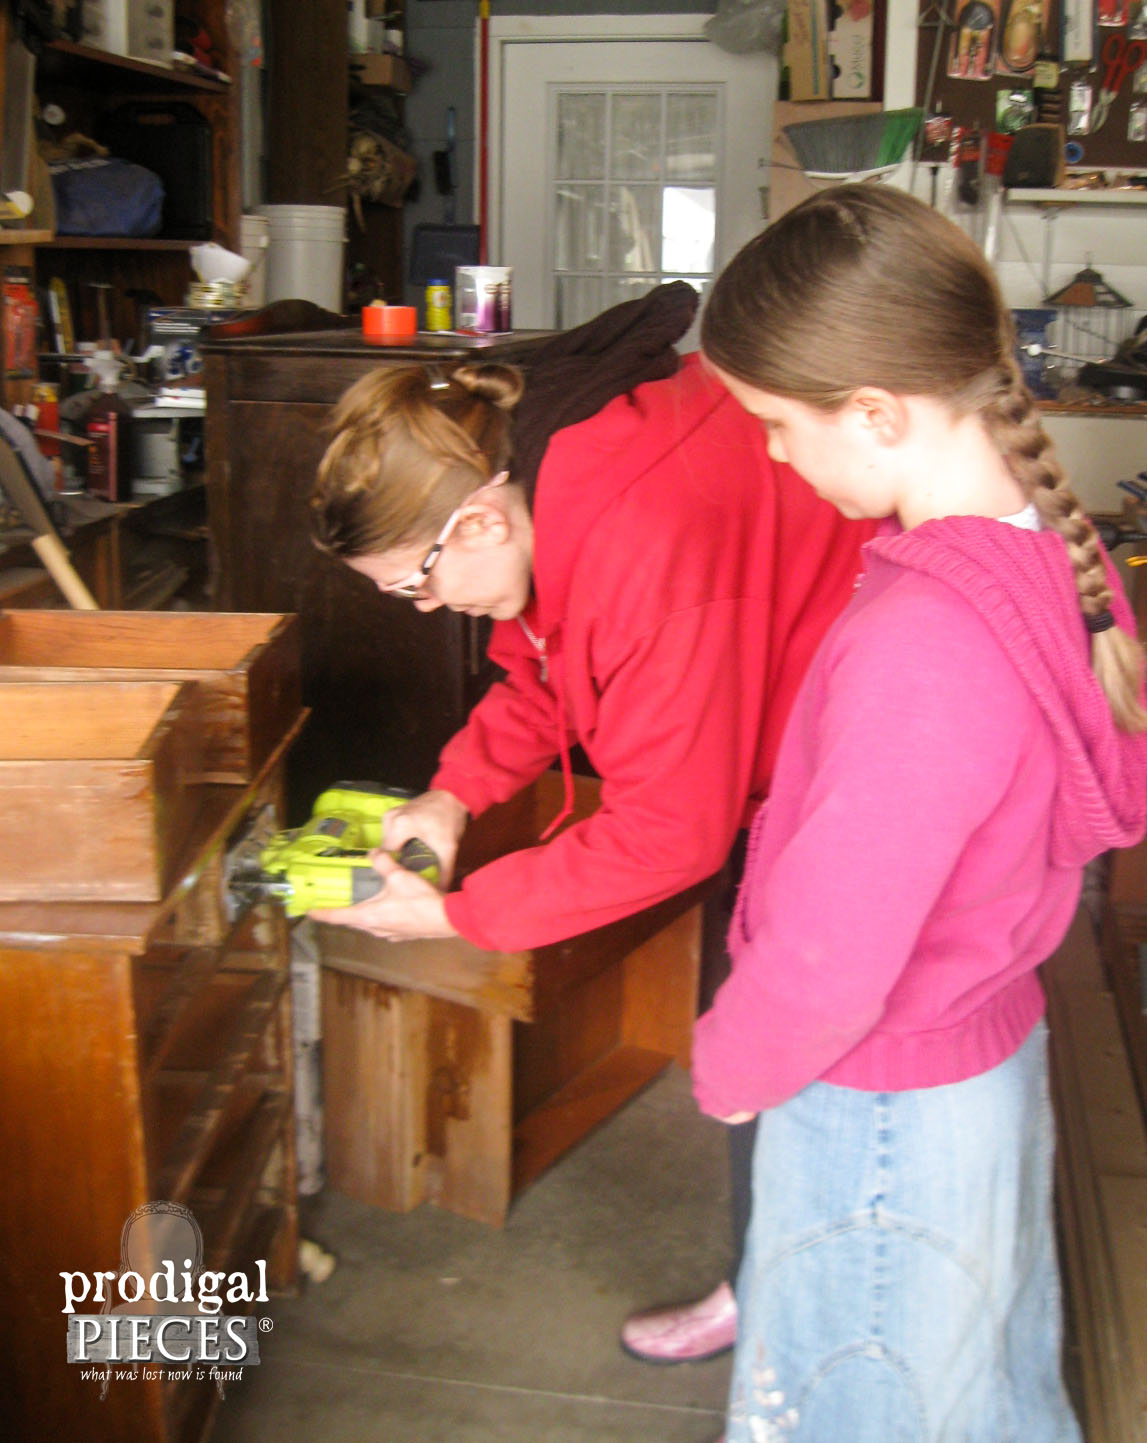 Cutting Child's Dresser with Ryobi Jigsaw | Prodigal Pieces | www.prodigalpieces.com